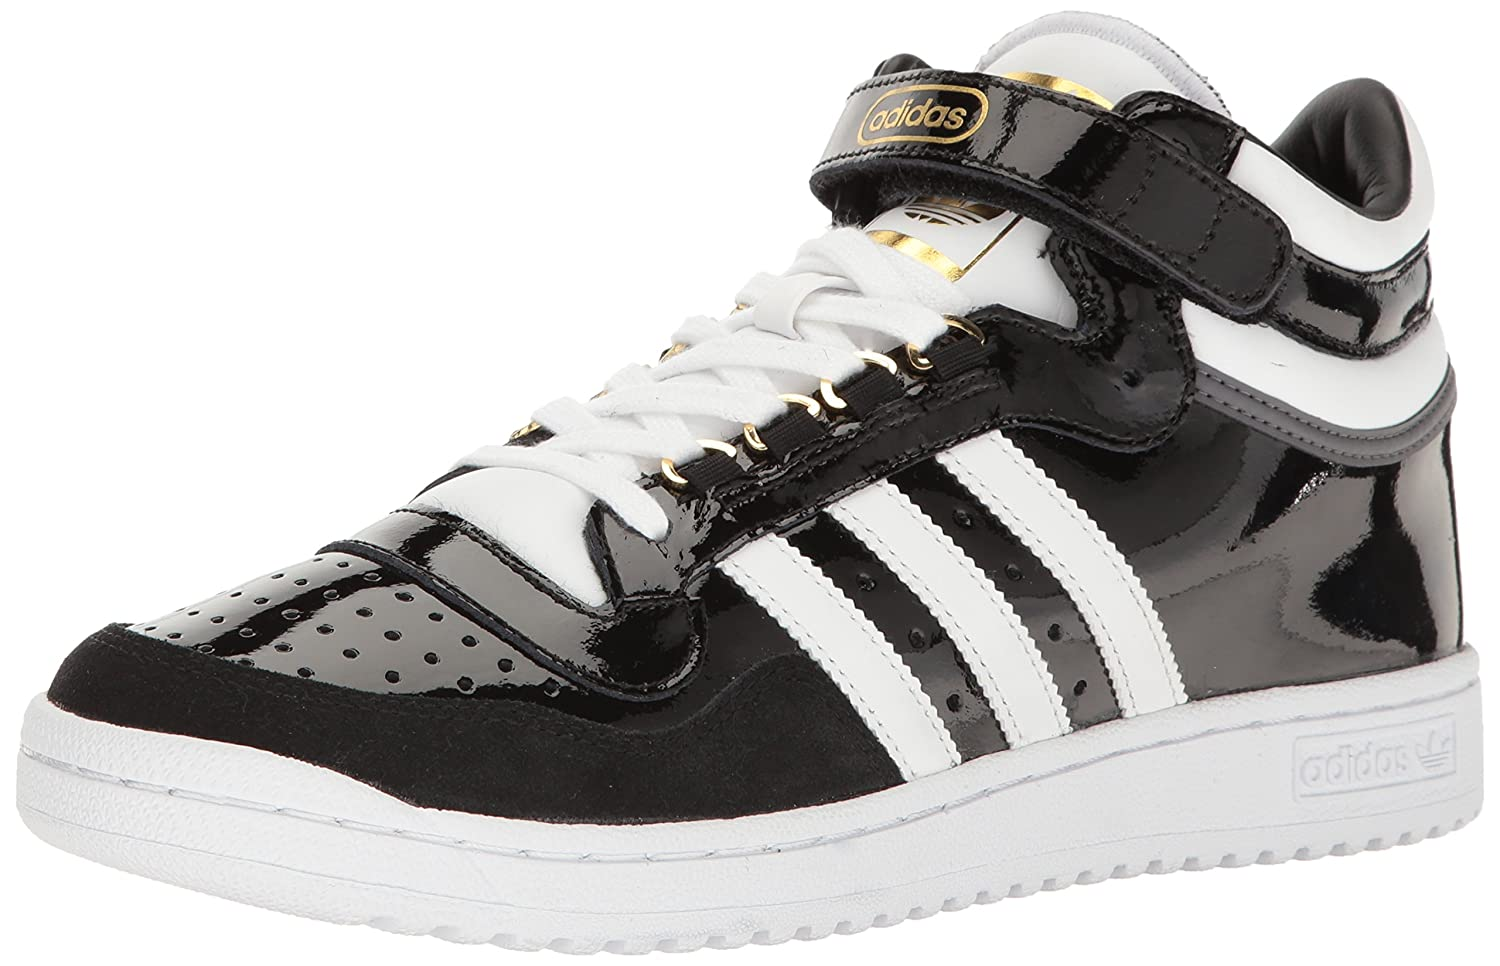 les ventes chaudes 747b1 b6468 adidas Originals Men's Concord Ii Mid Fashion Sneakers